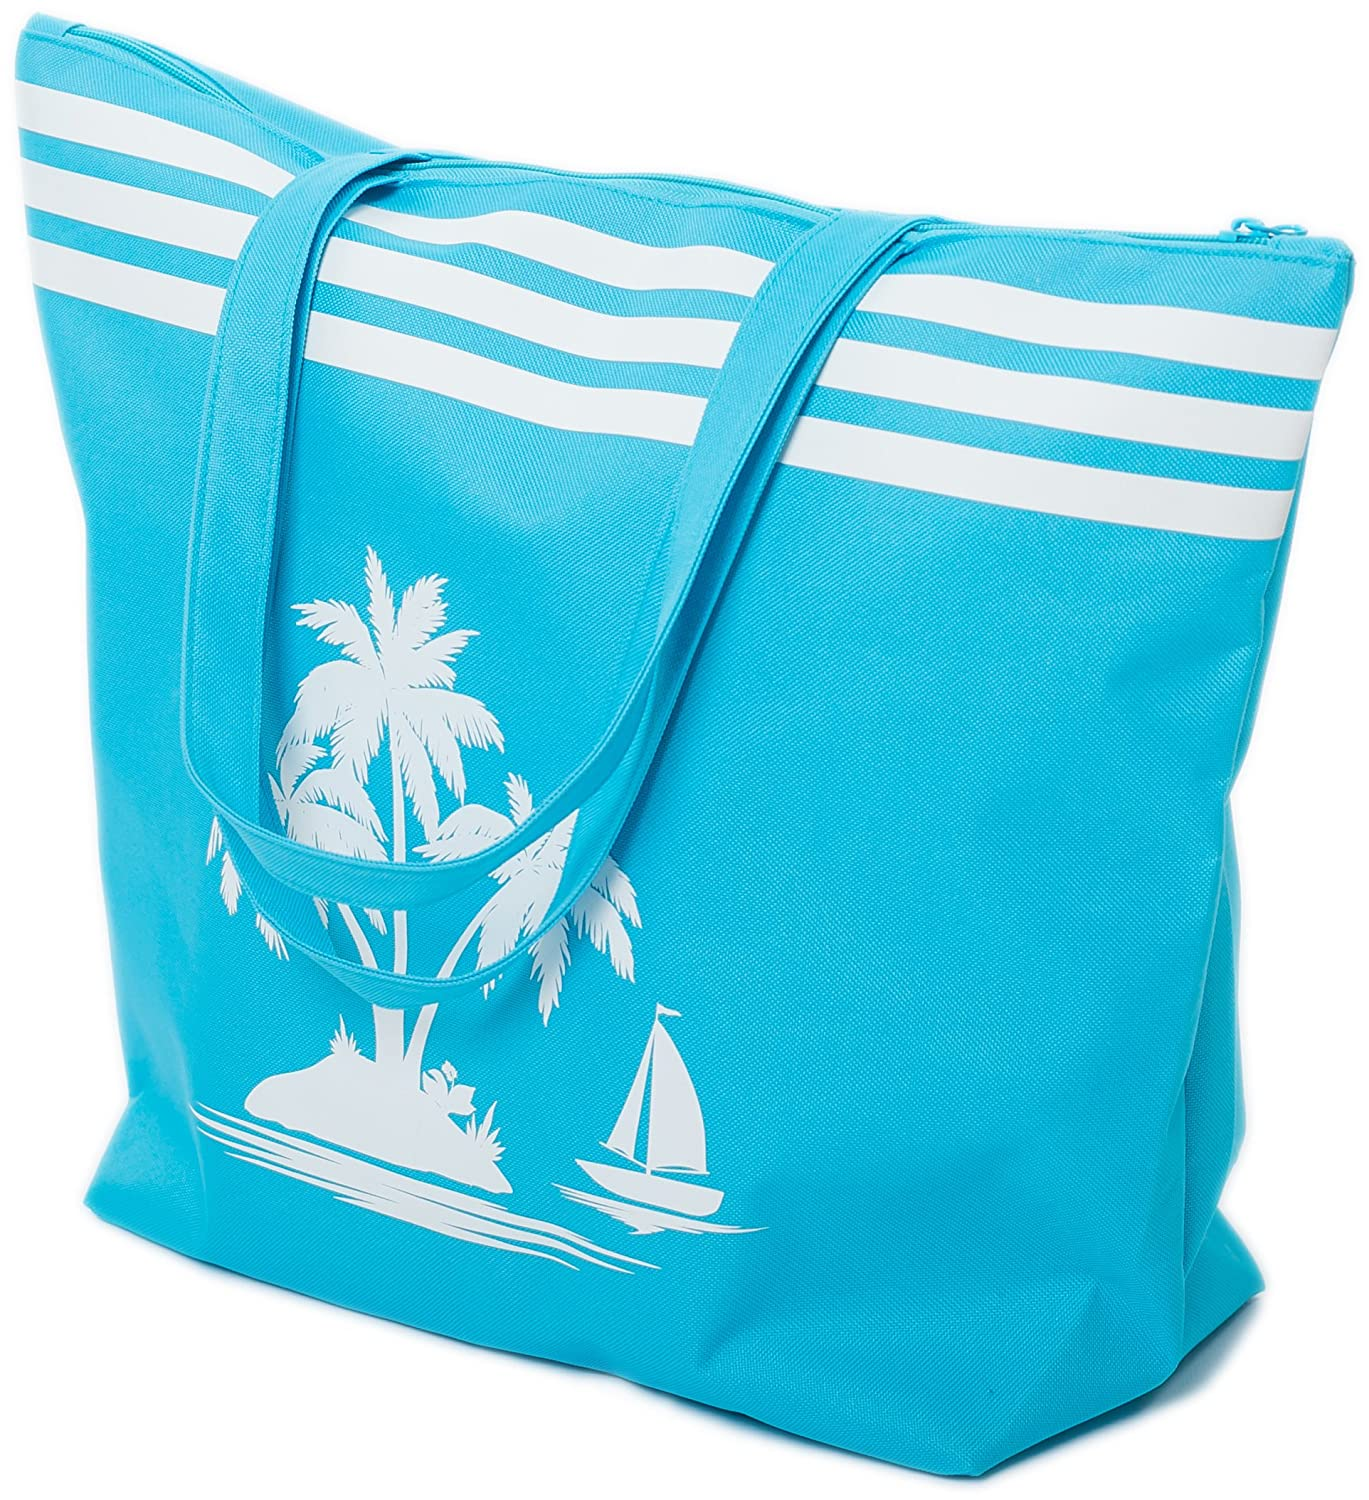 Beach Bag Womens Large Summer Canvas Tote Bags Zip Closure 50 x 38 x 16 CM Palm Tree Pattern Airee Fairee 10437888